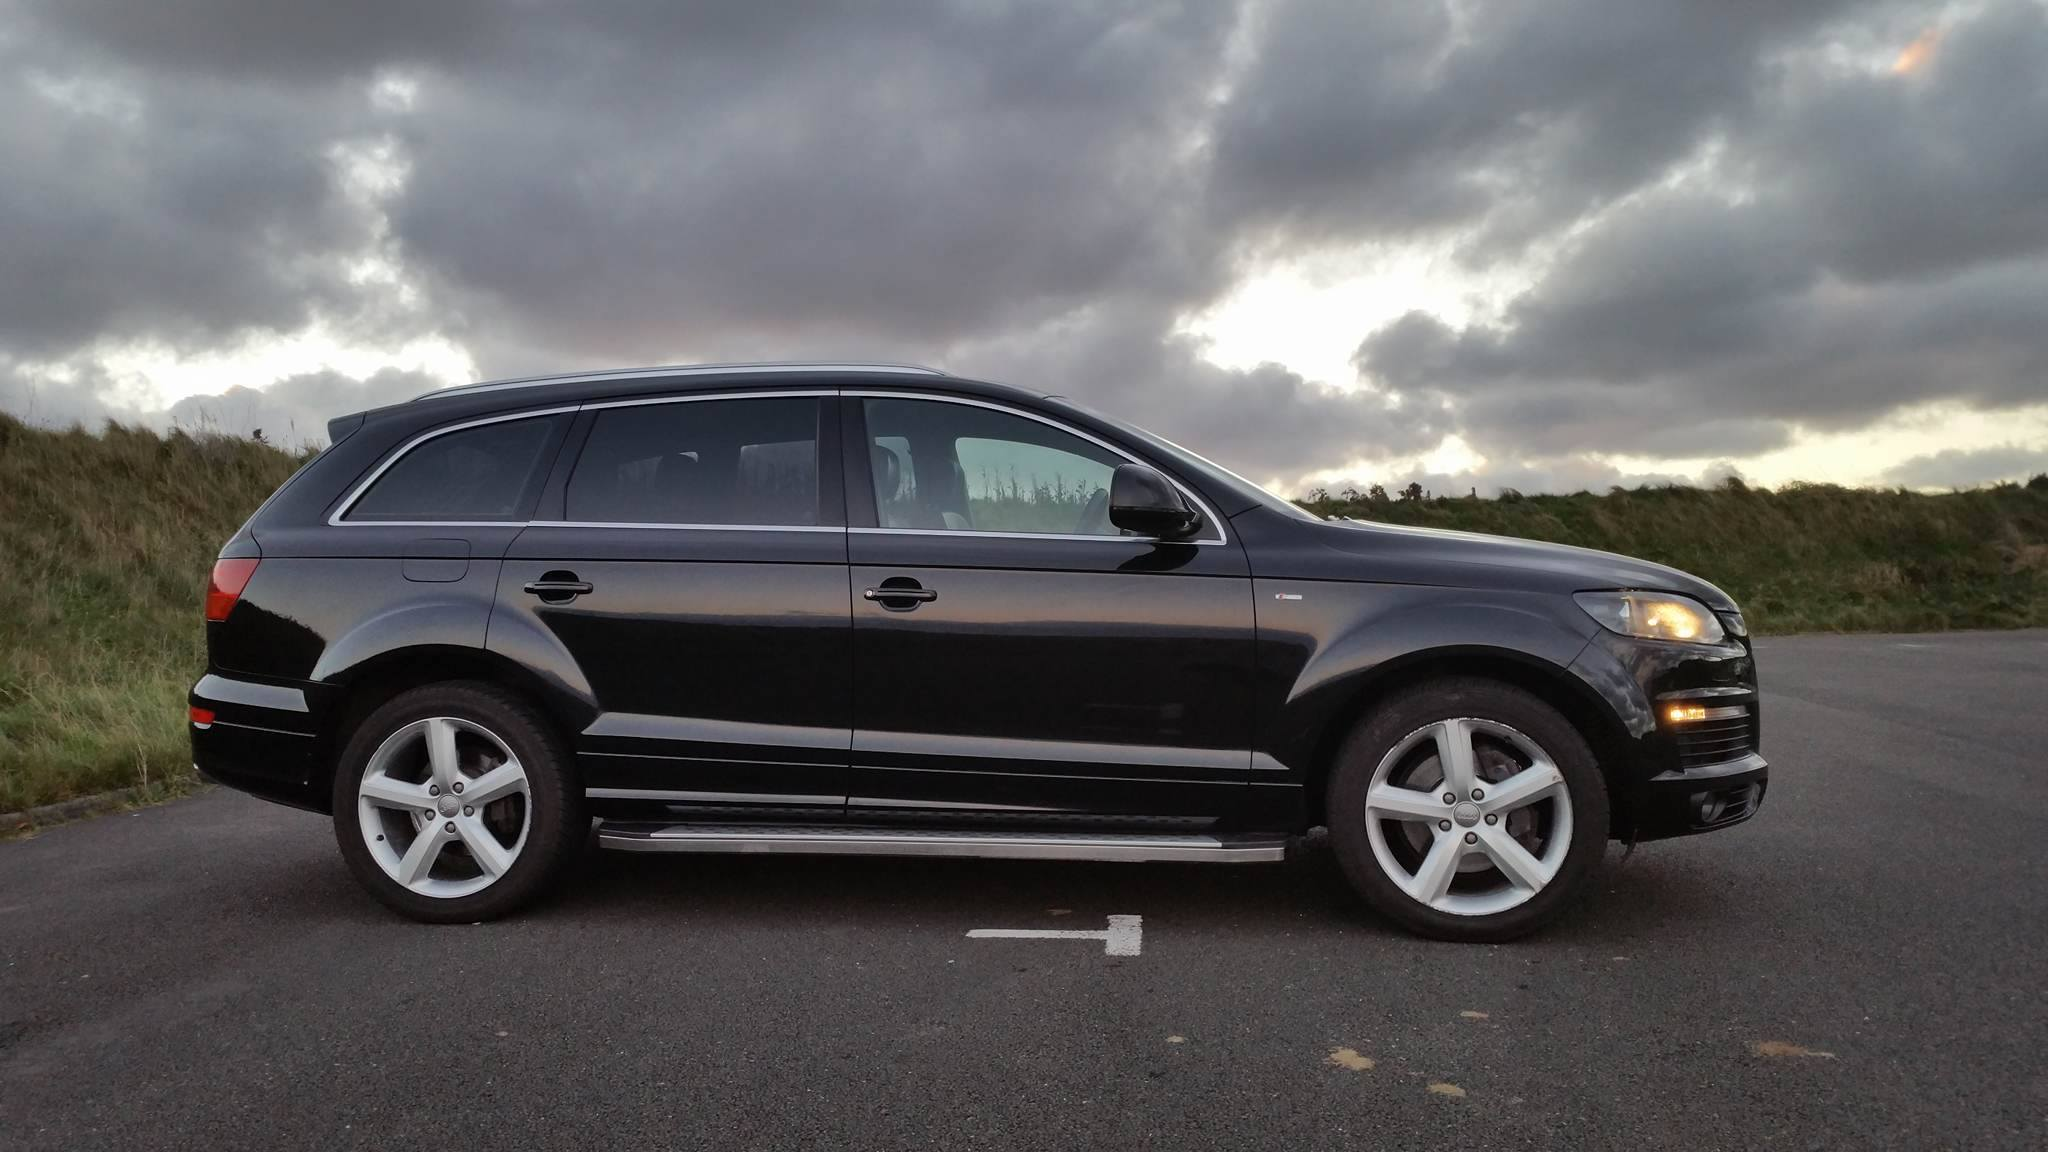 Audi Q7 3000 from private